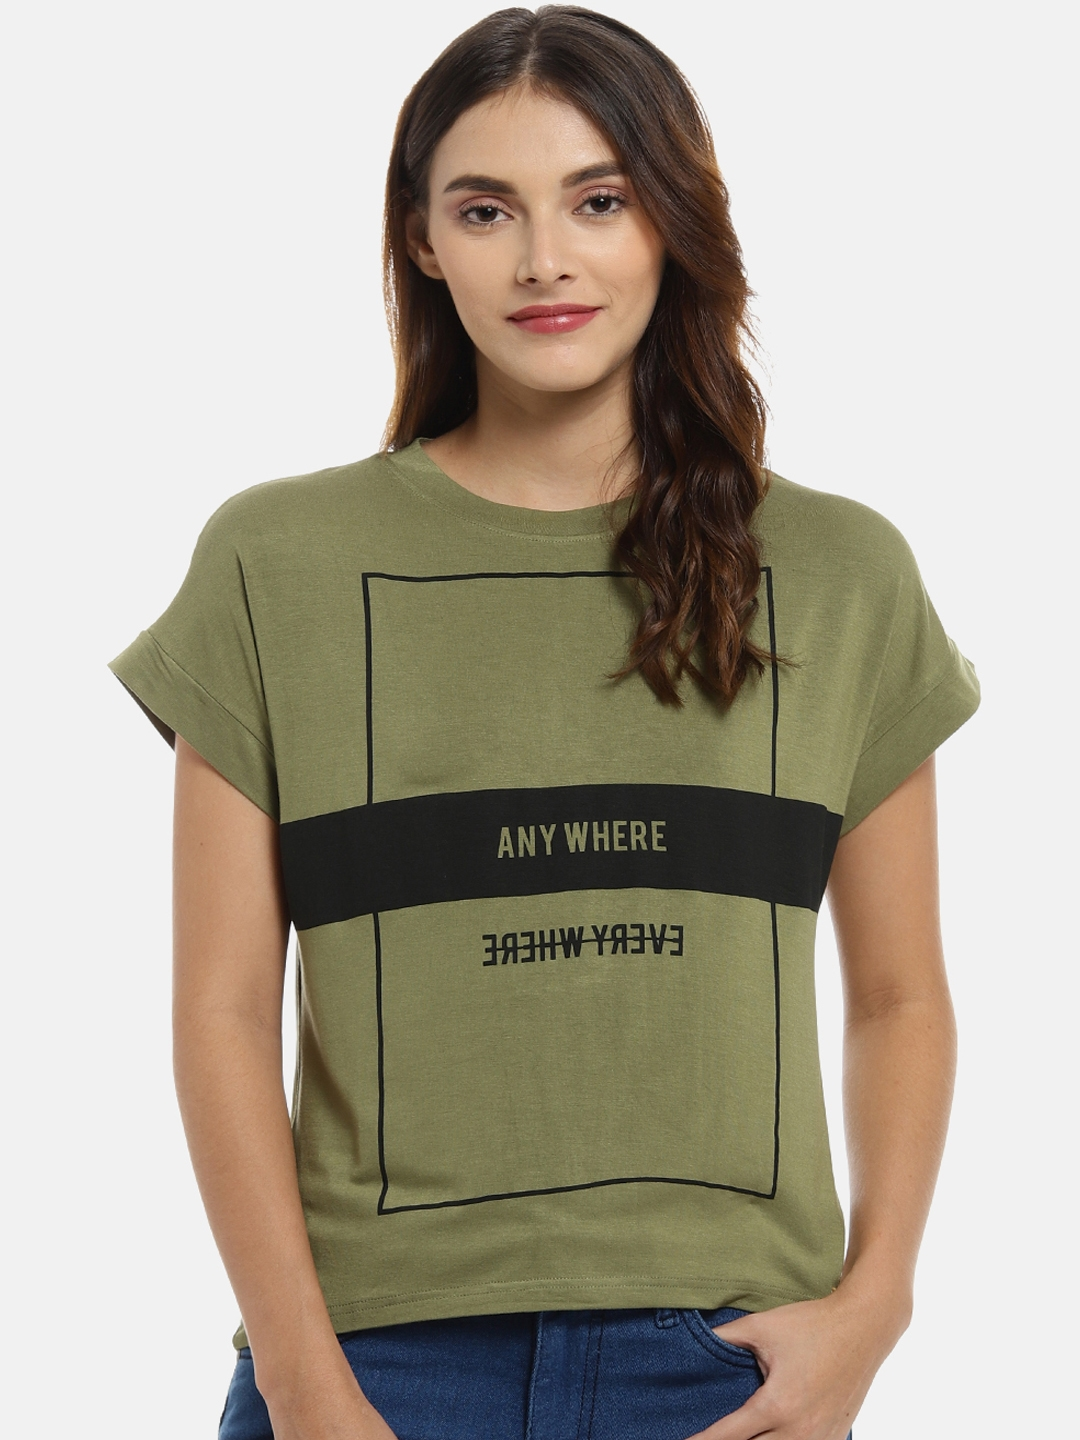 Campus Sutra Women Olive Green Printed Top